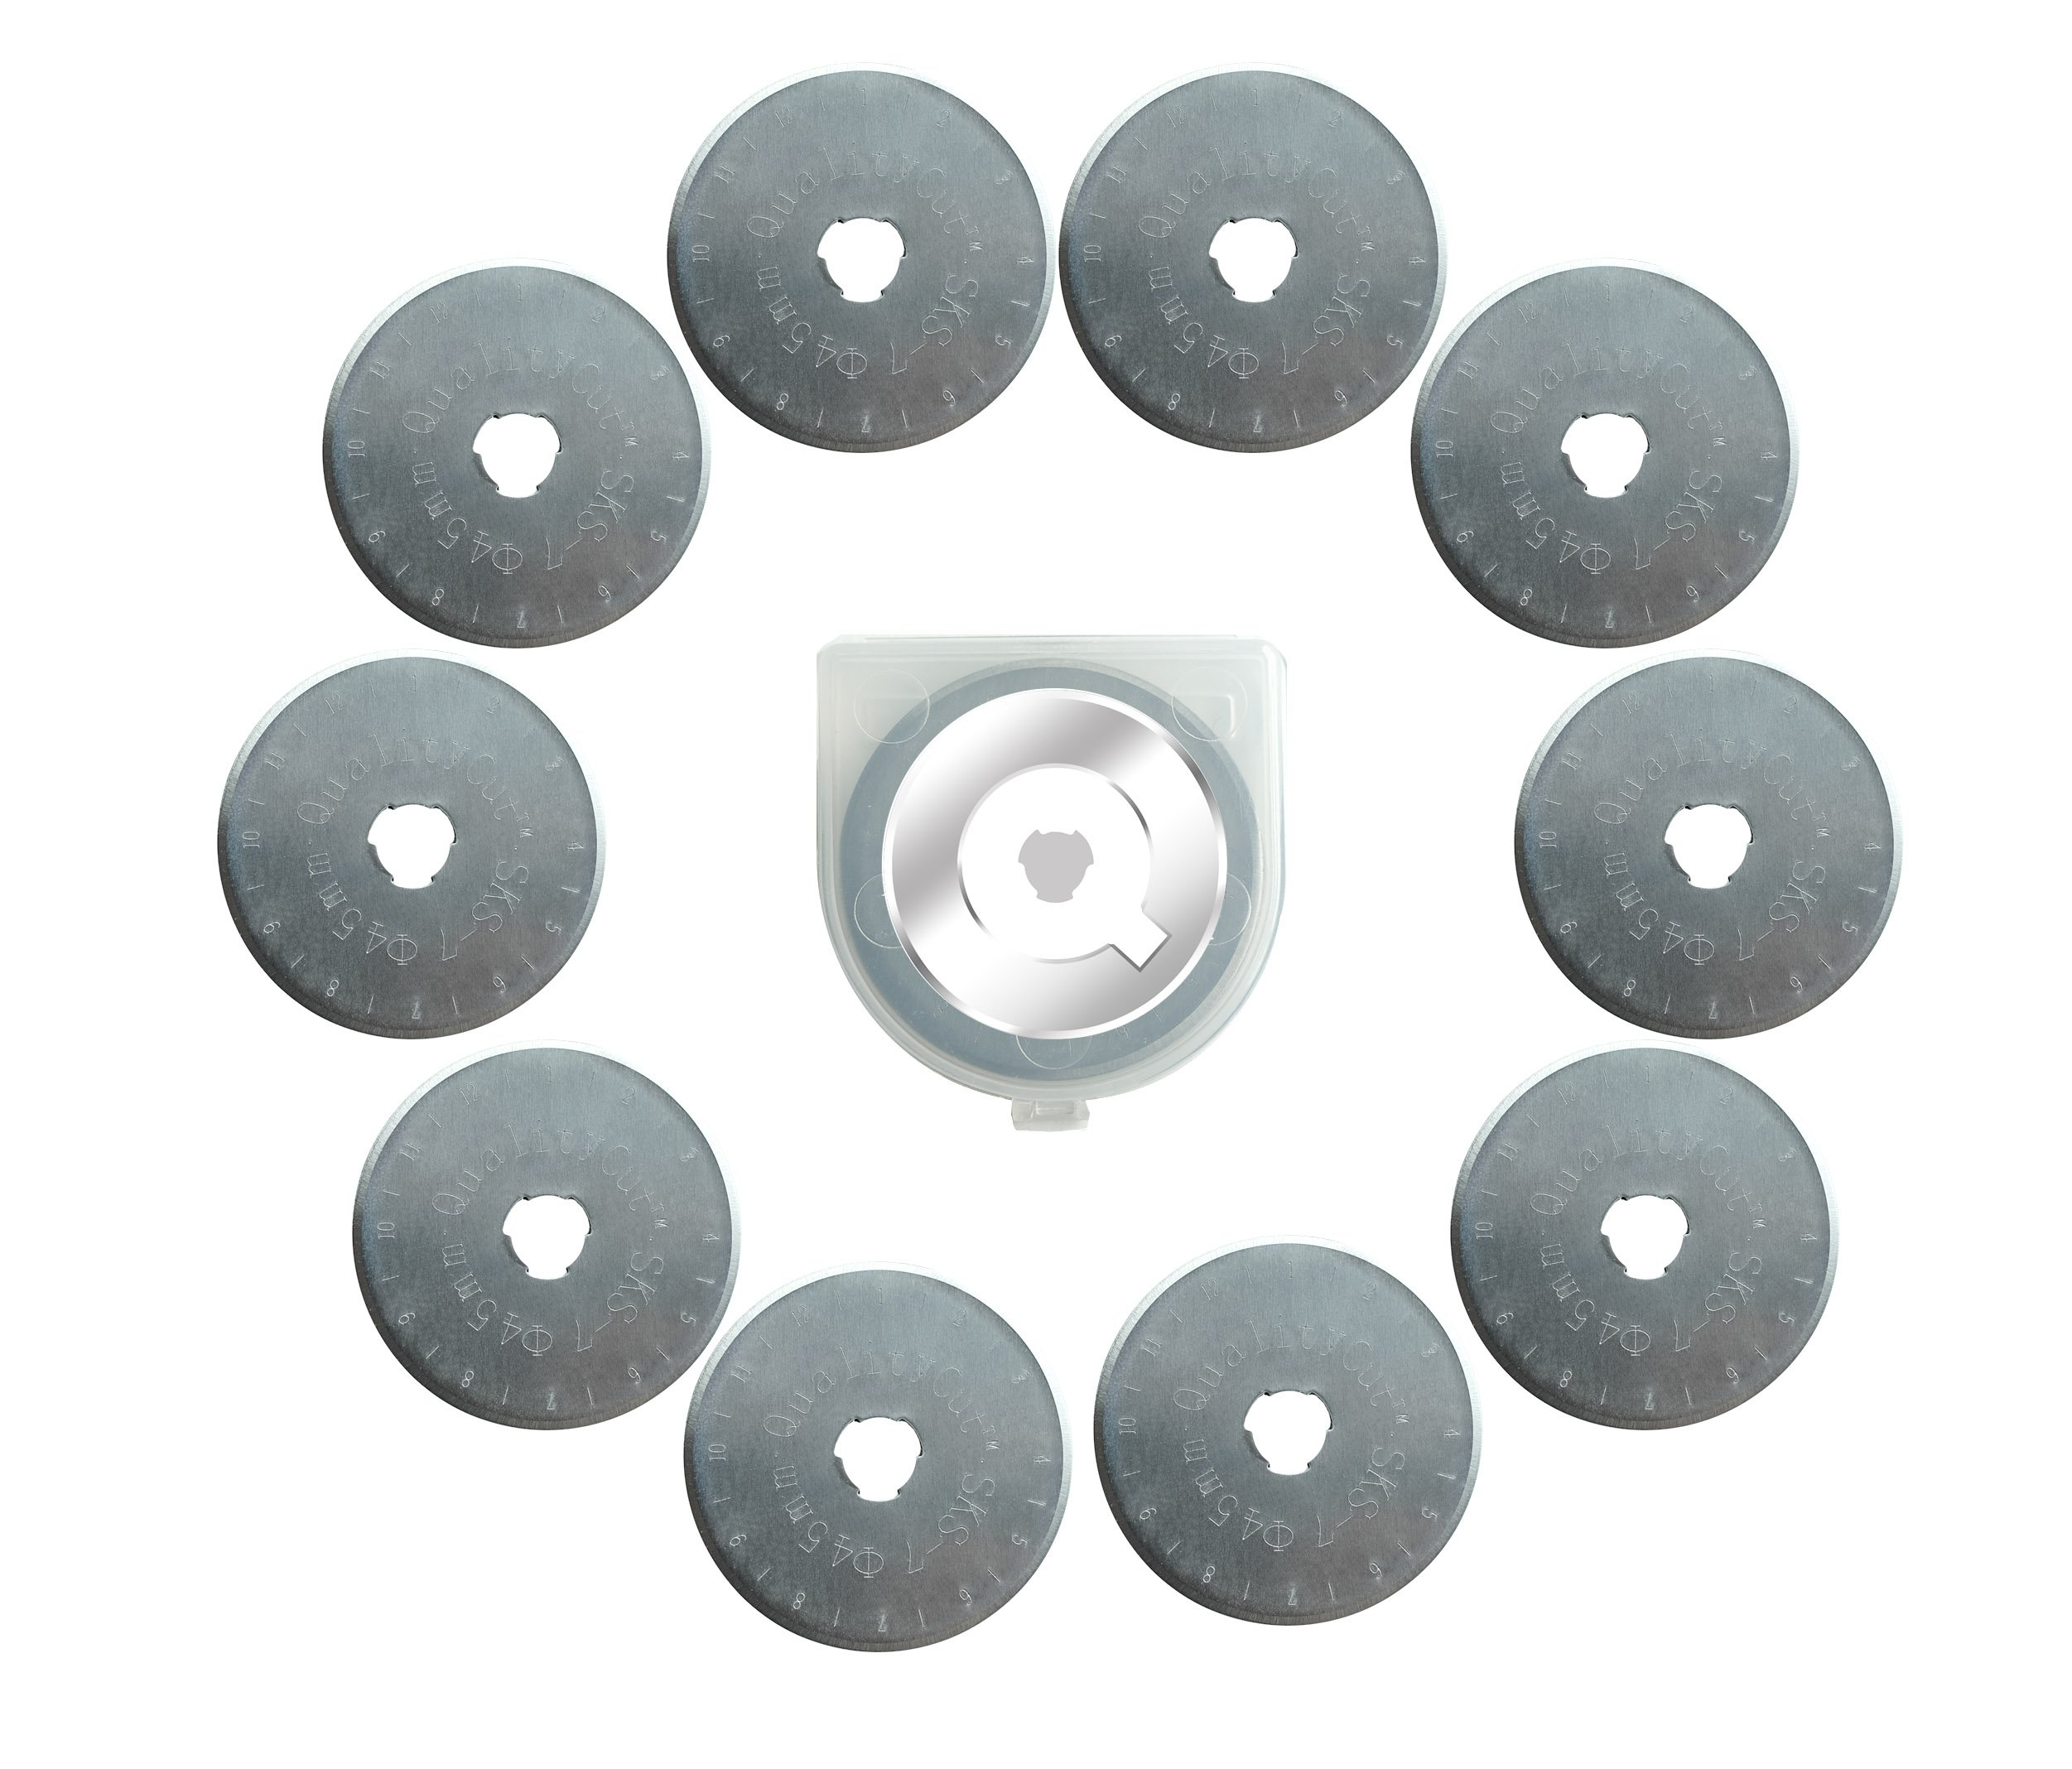 QualityCut 10x 45mm Rotary Cutter Refill Blades by QualityCut